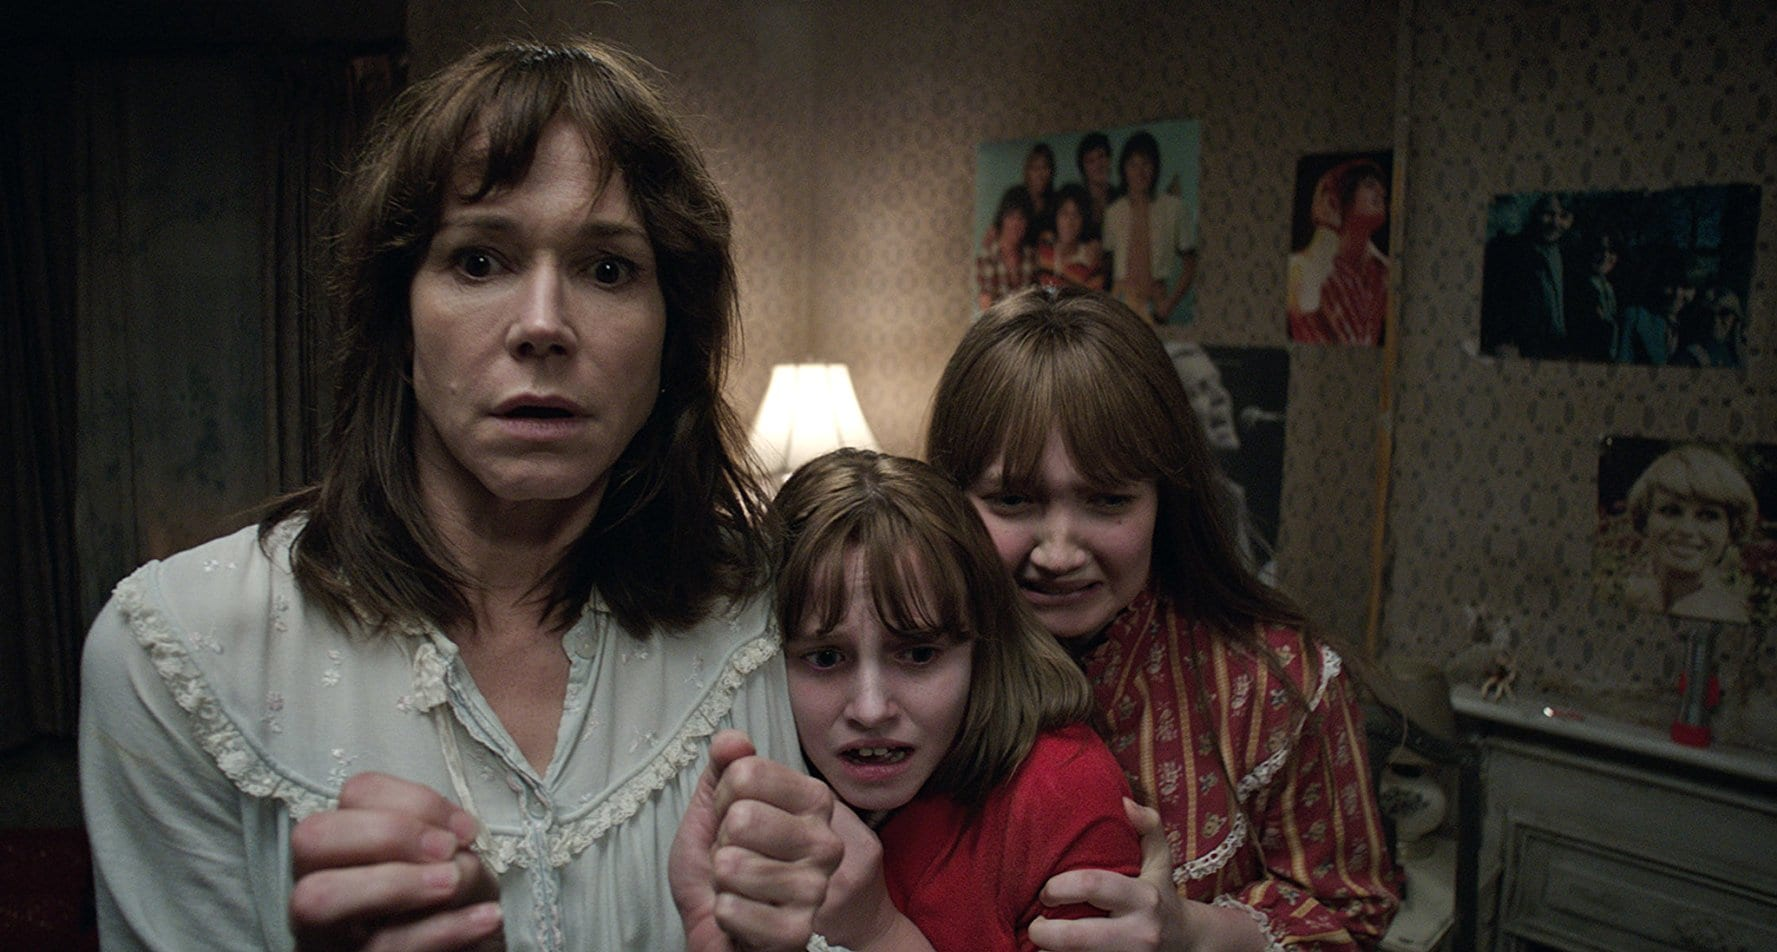 The Hodgson family - mother Frances O'Connor and daughters Lauren Esposito and Madison Wolfe - in The Conjuring 2 (2016)